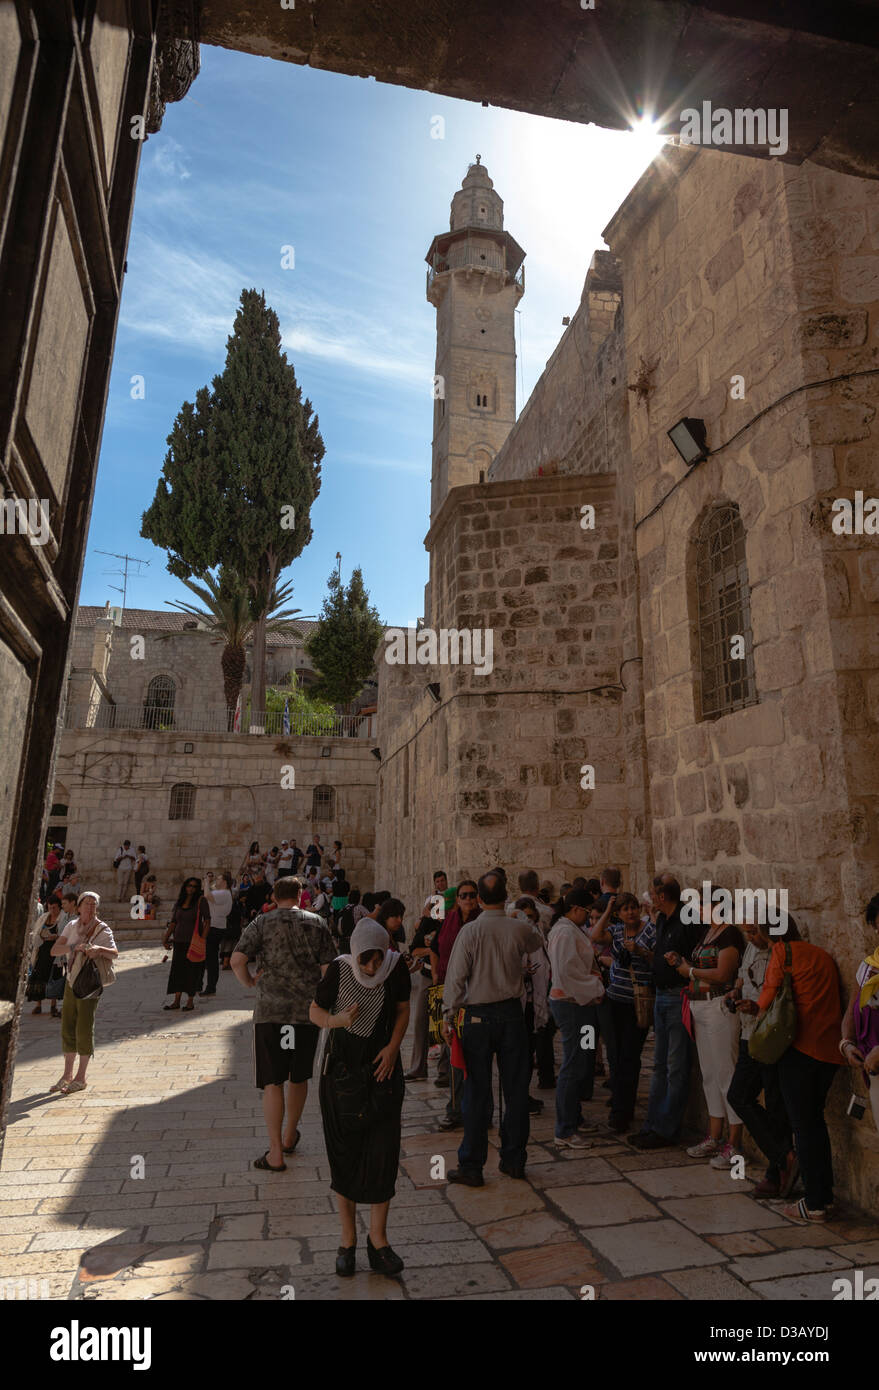 Church of Holy Sepulchre in Jerusalem, Israel - Stock Image